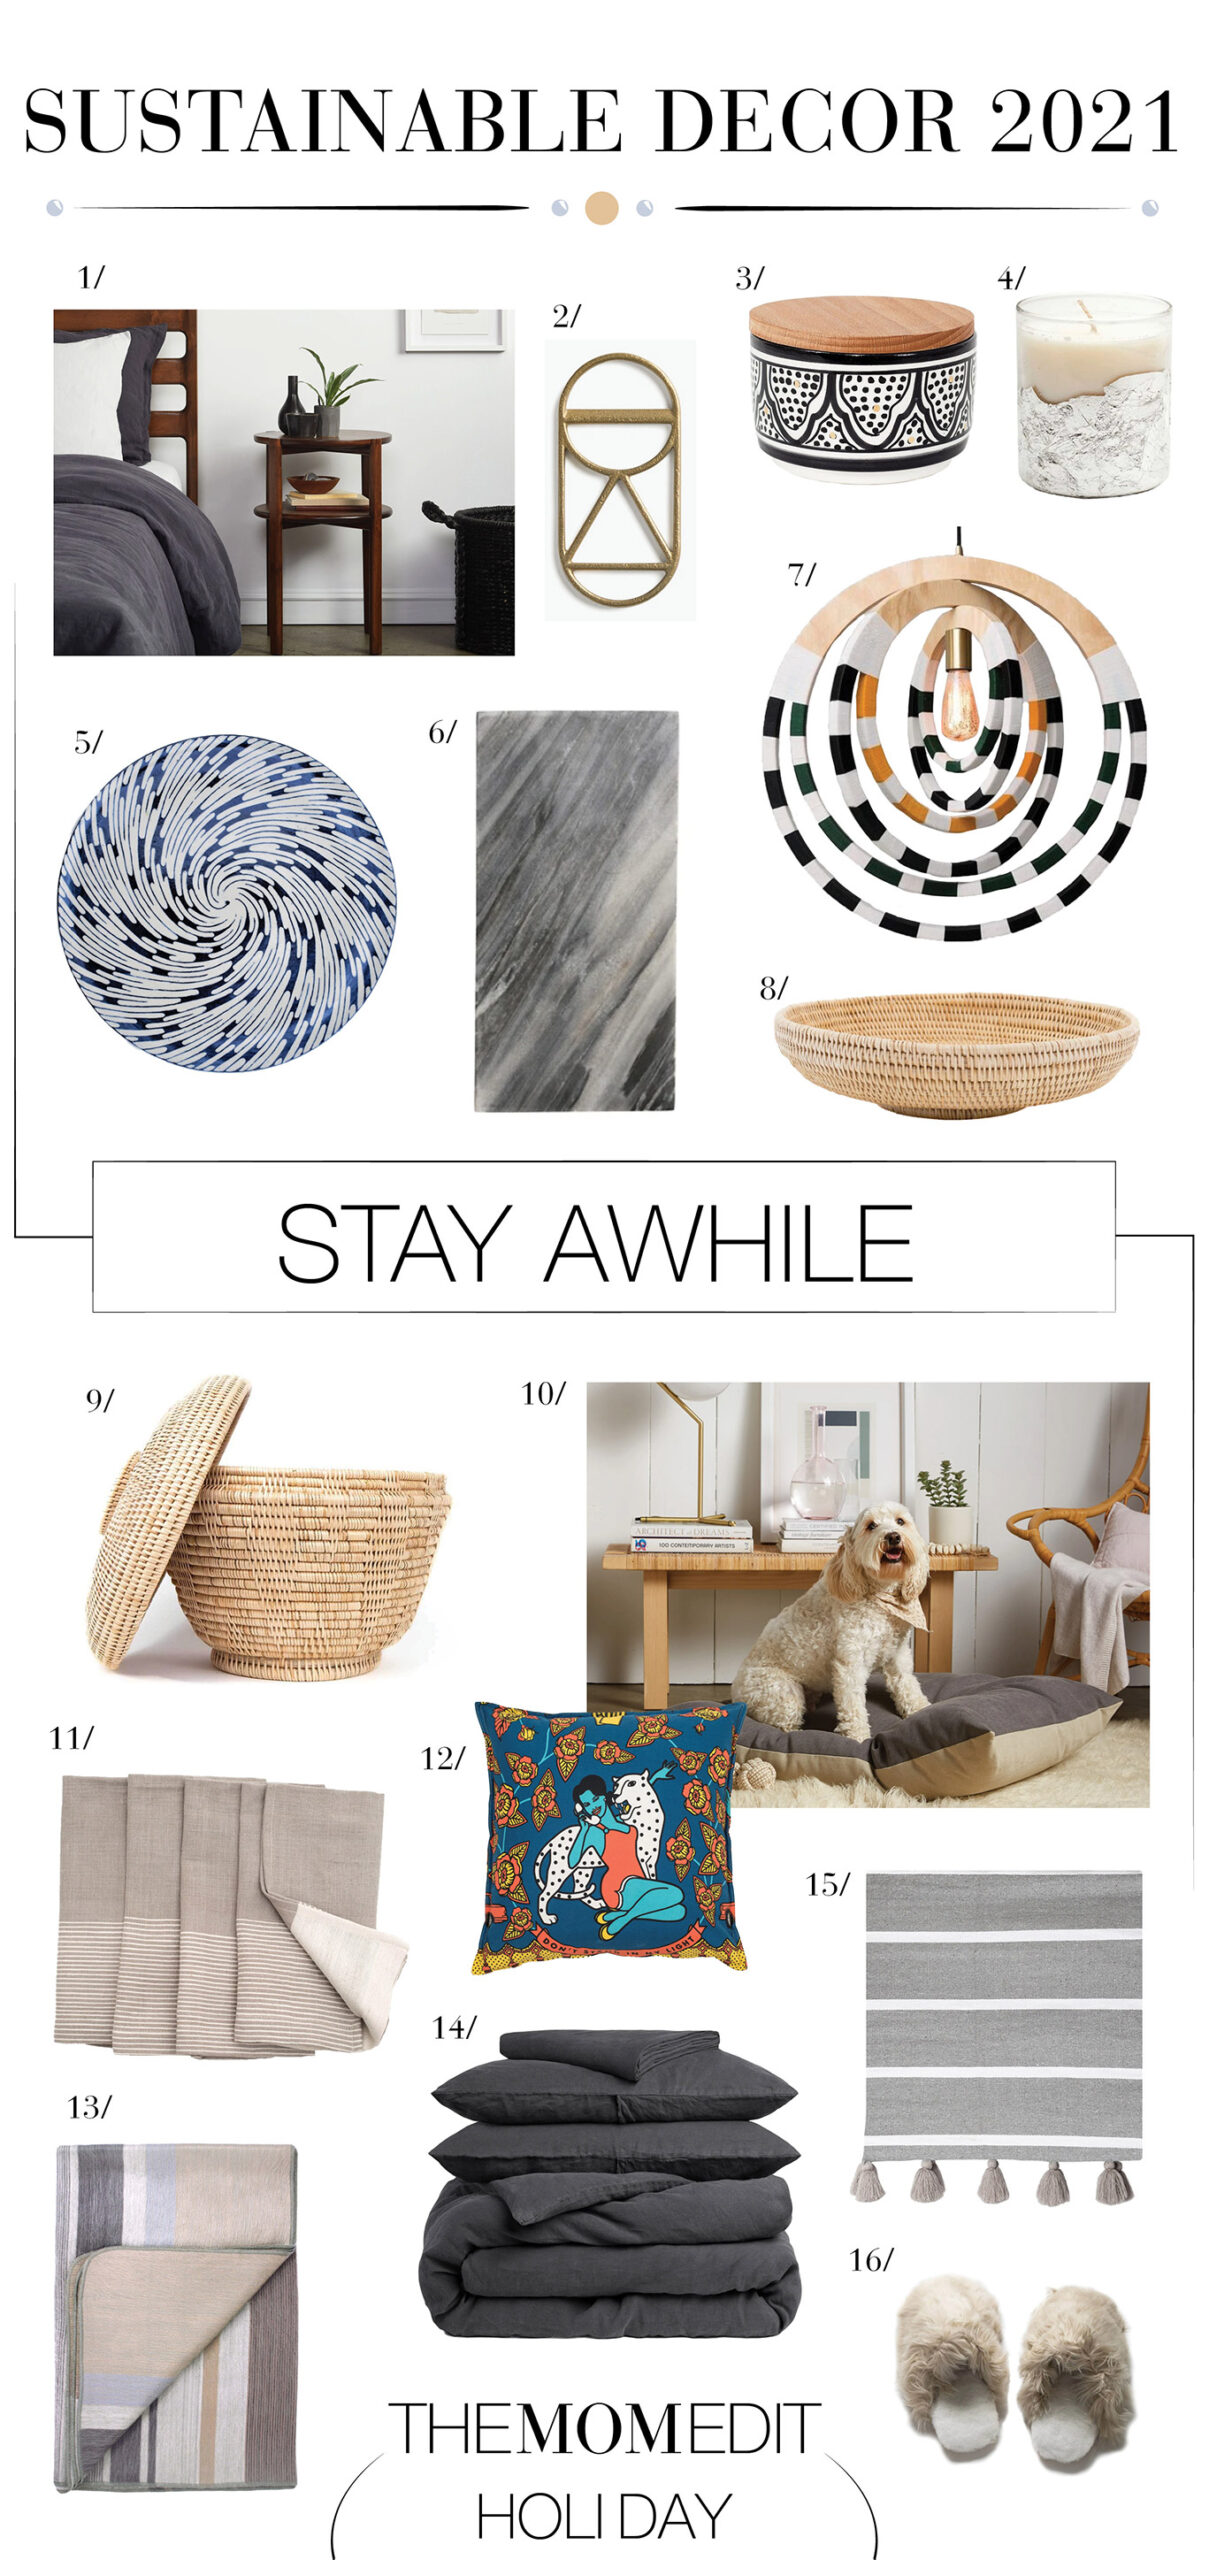 To spark joy, we're going sustainable. Think handmade, artisanal, eco-friendly, Black-owned, fair trade & community supporting. Beautiful home decor, right this way.